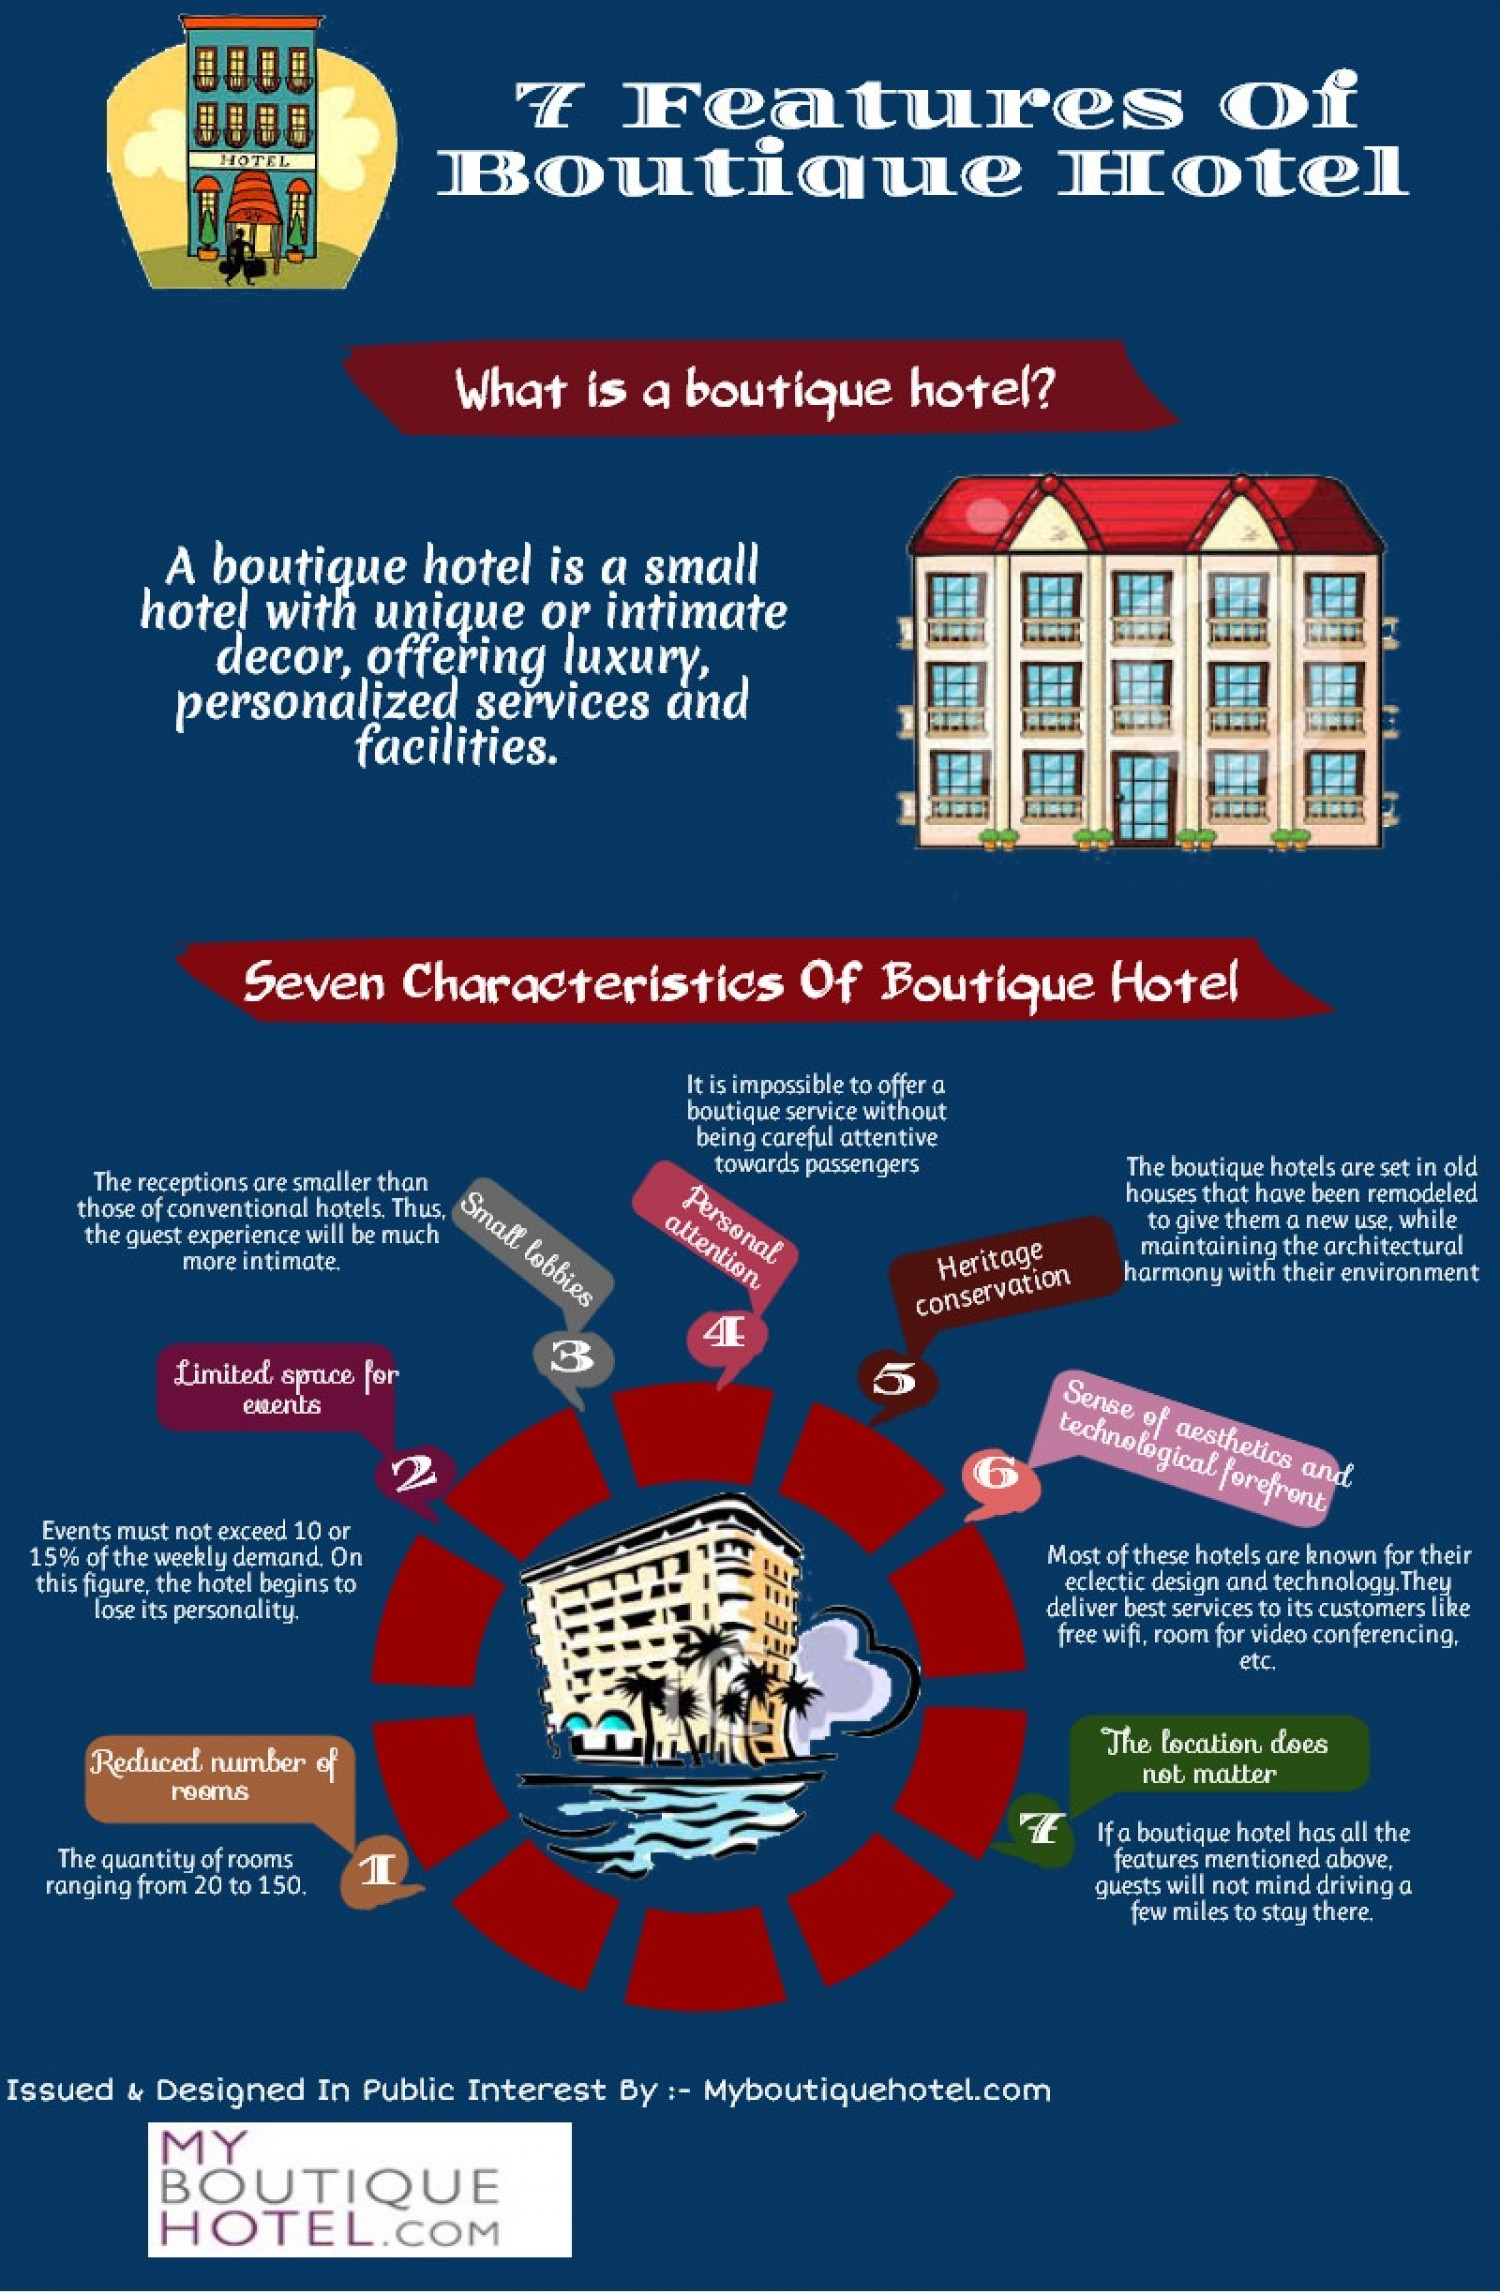 7 features of boutique hotel infographic for Boutique hotel characteristics